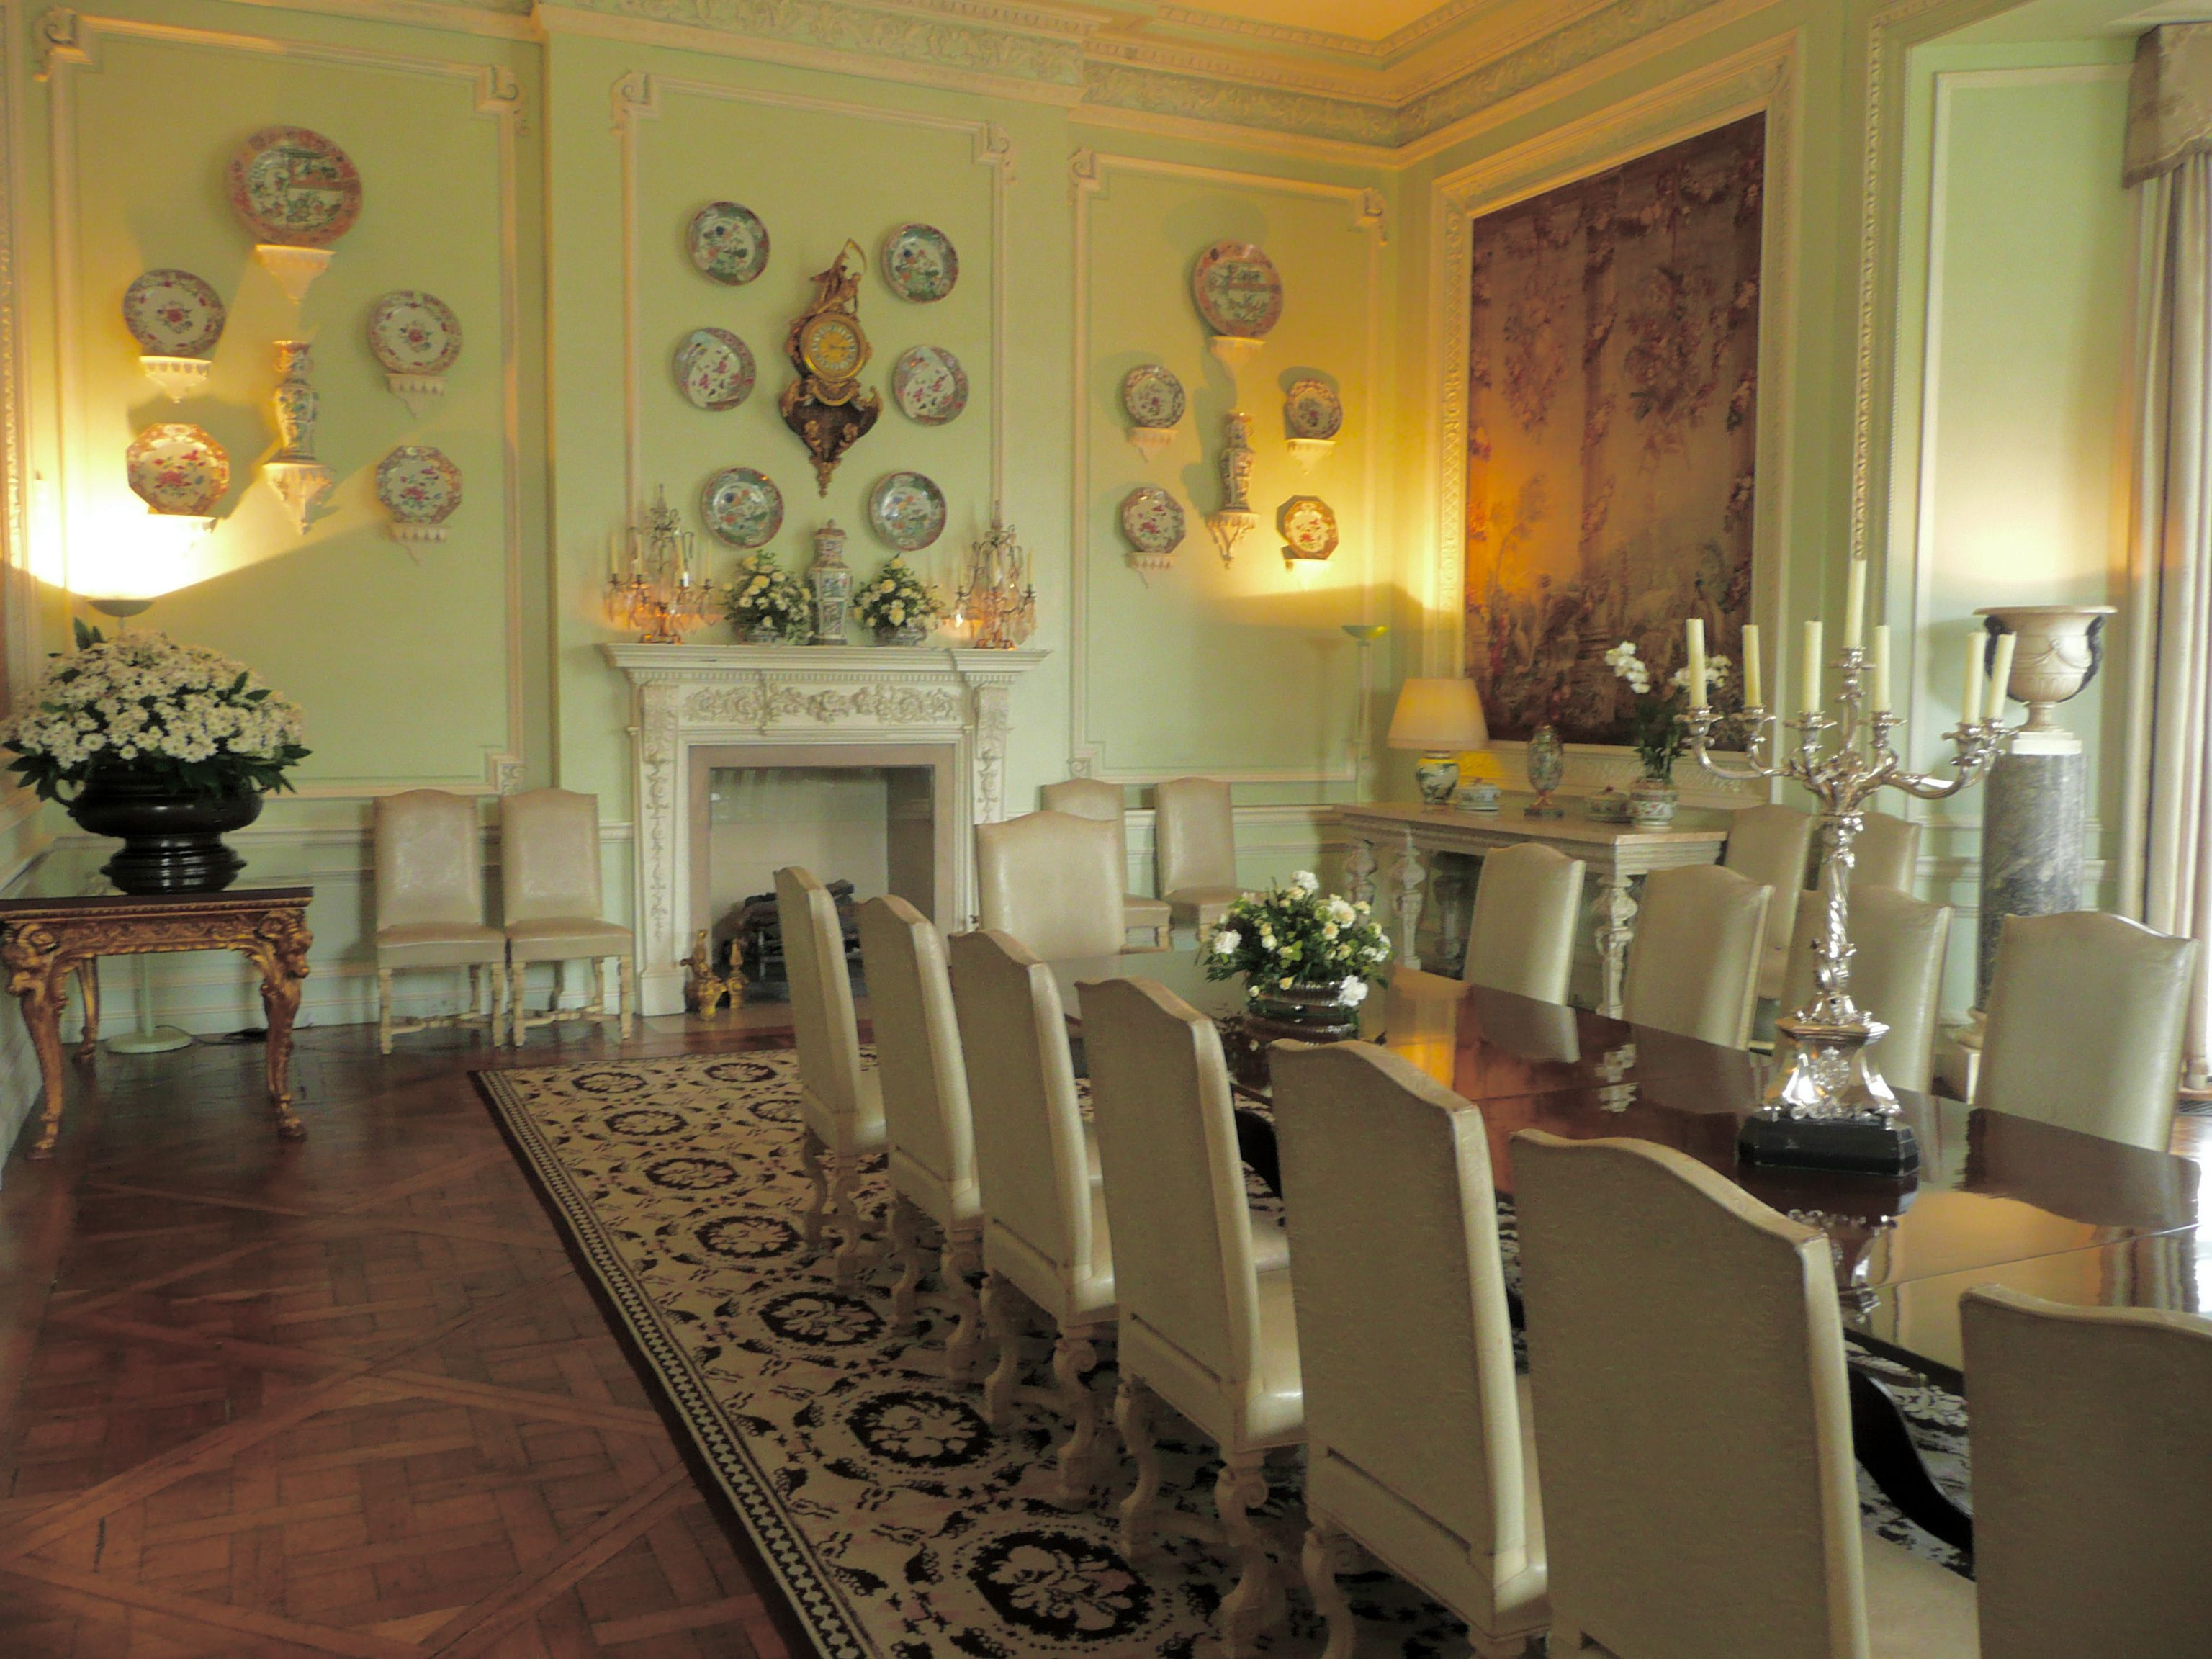 Leeds Castle Dining Room Maidstone Kent England Uk  Travel Beauteous Castle Dining Room Design Decoration